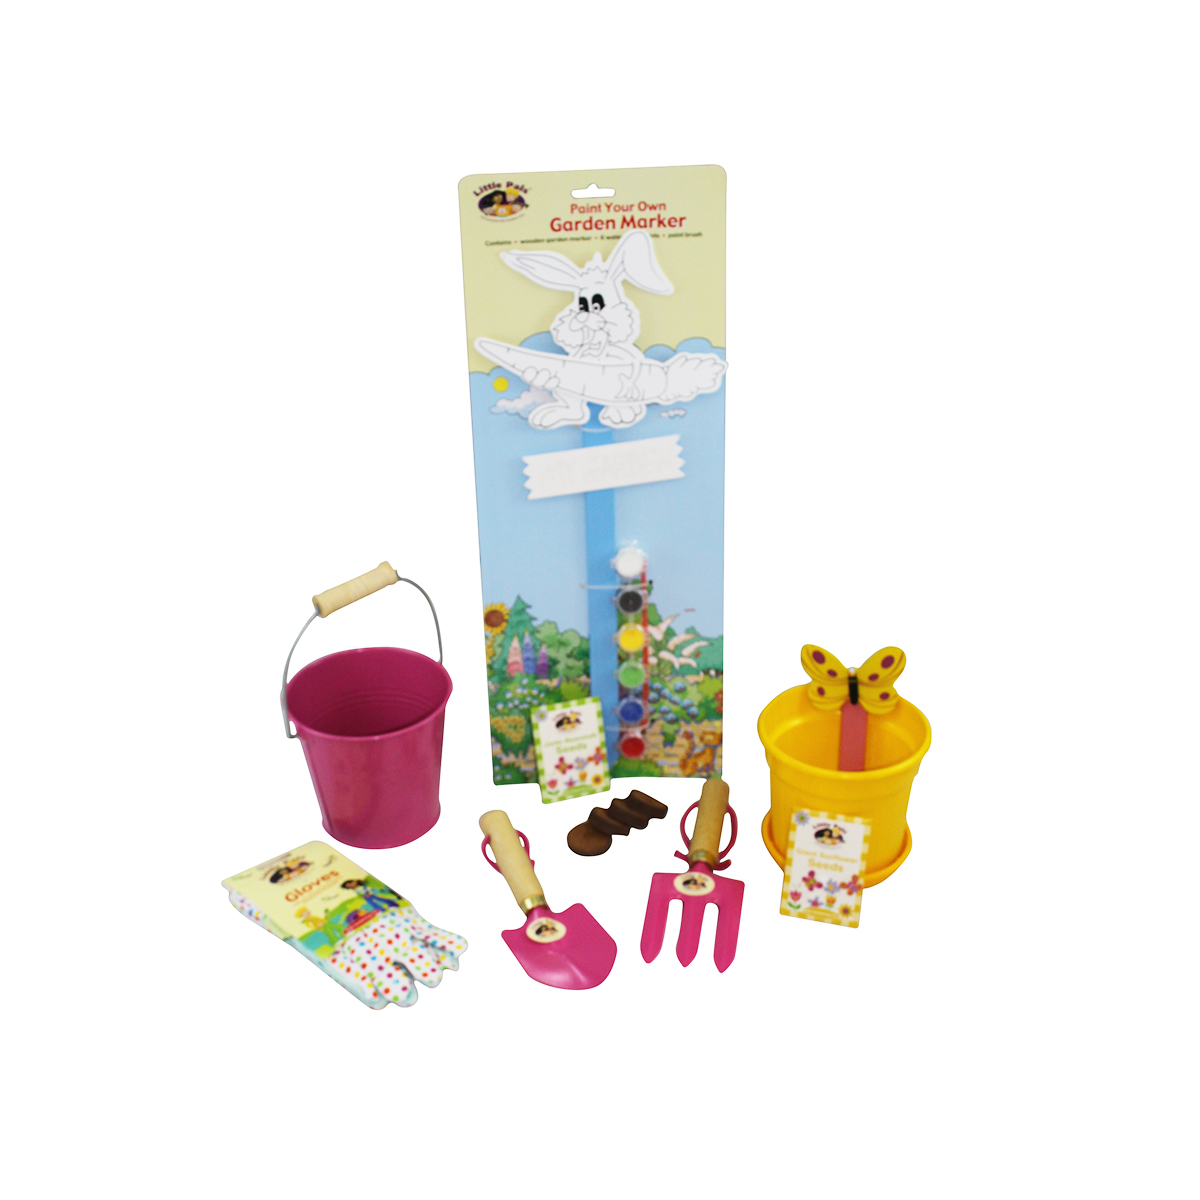 Children's Gardening Fun Set, Pink